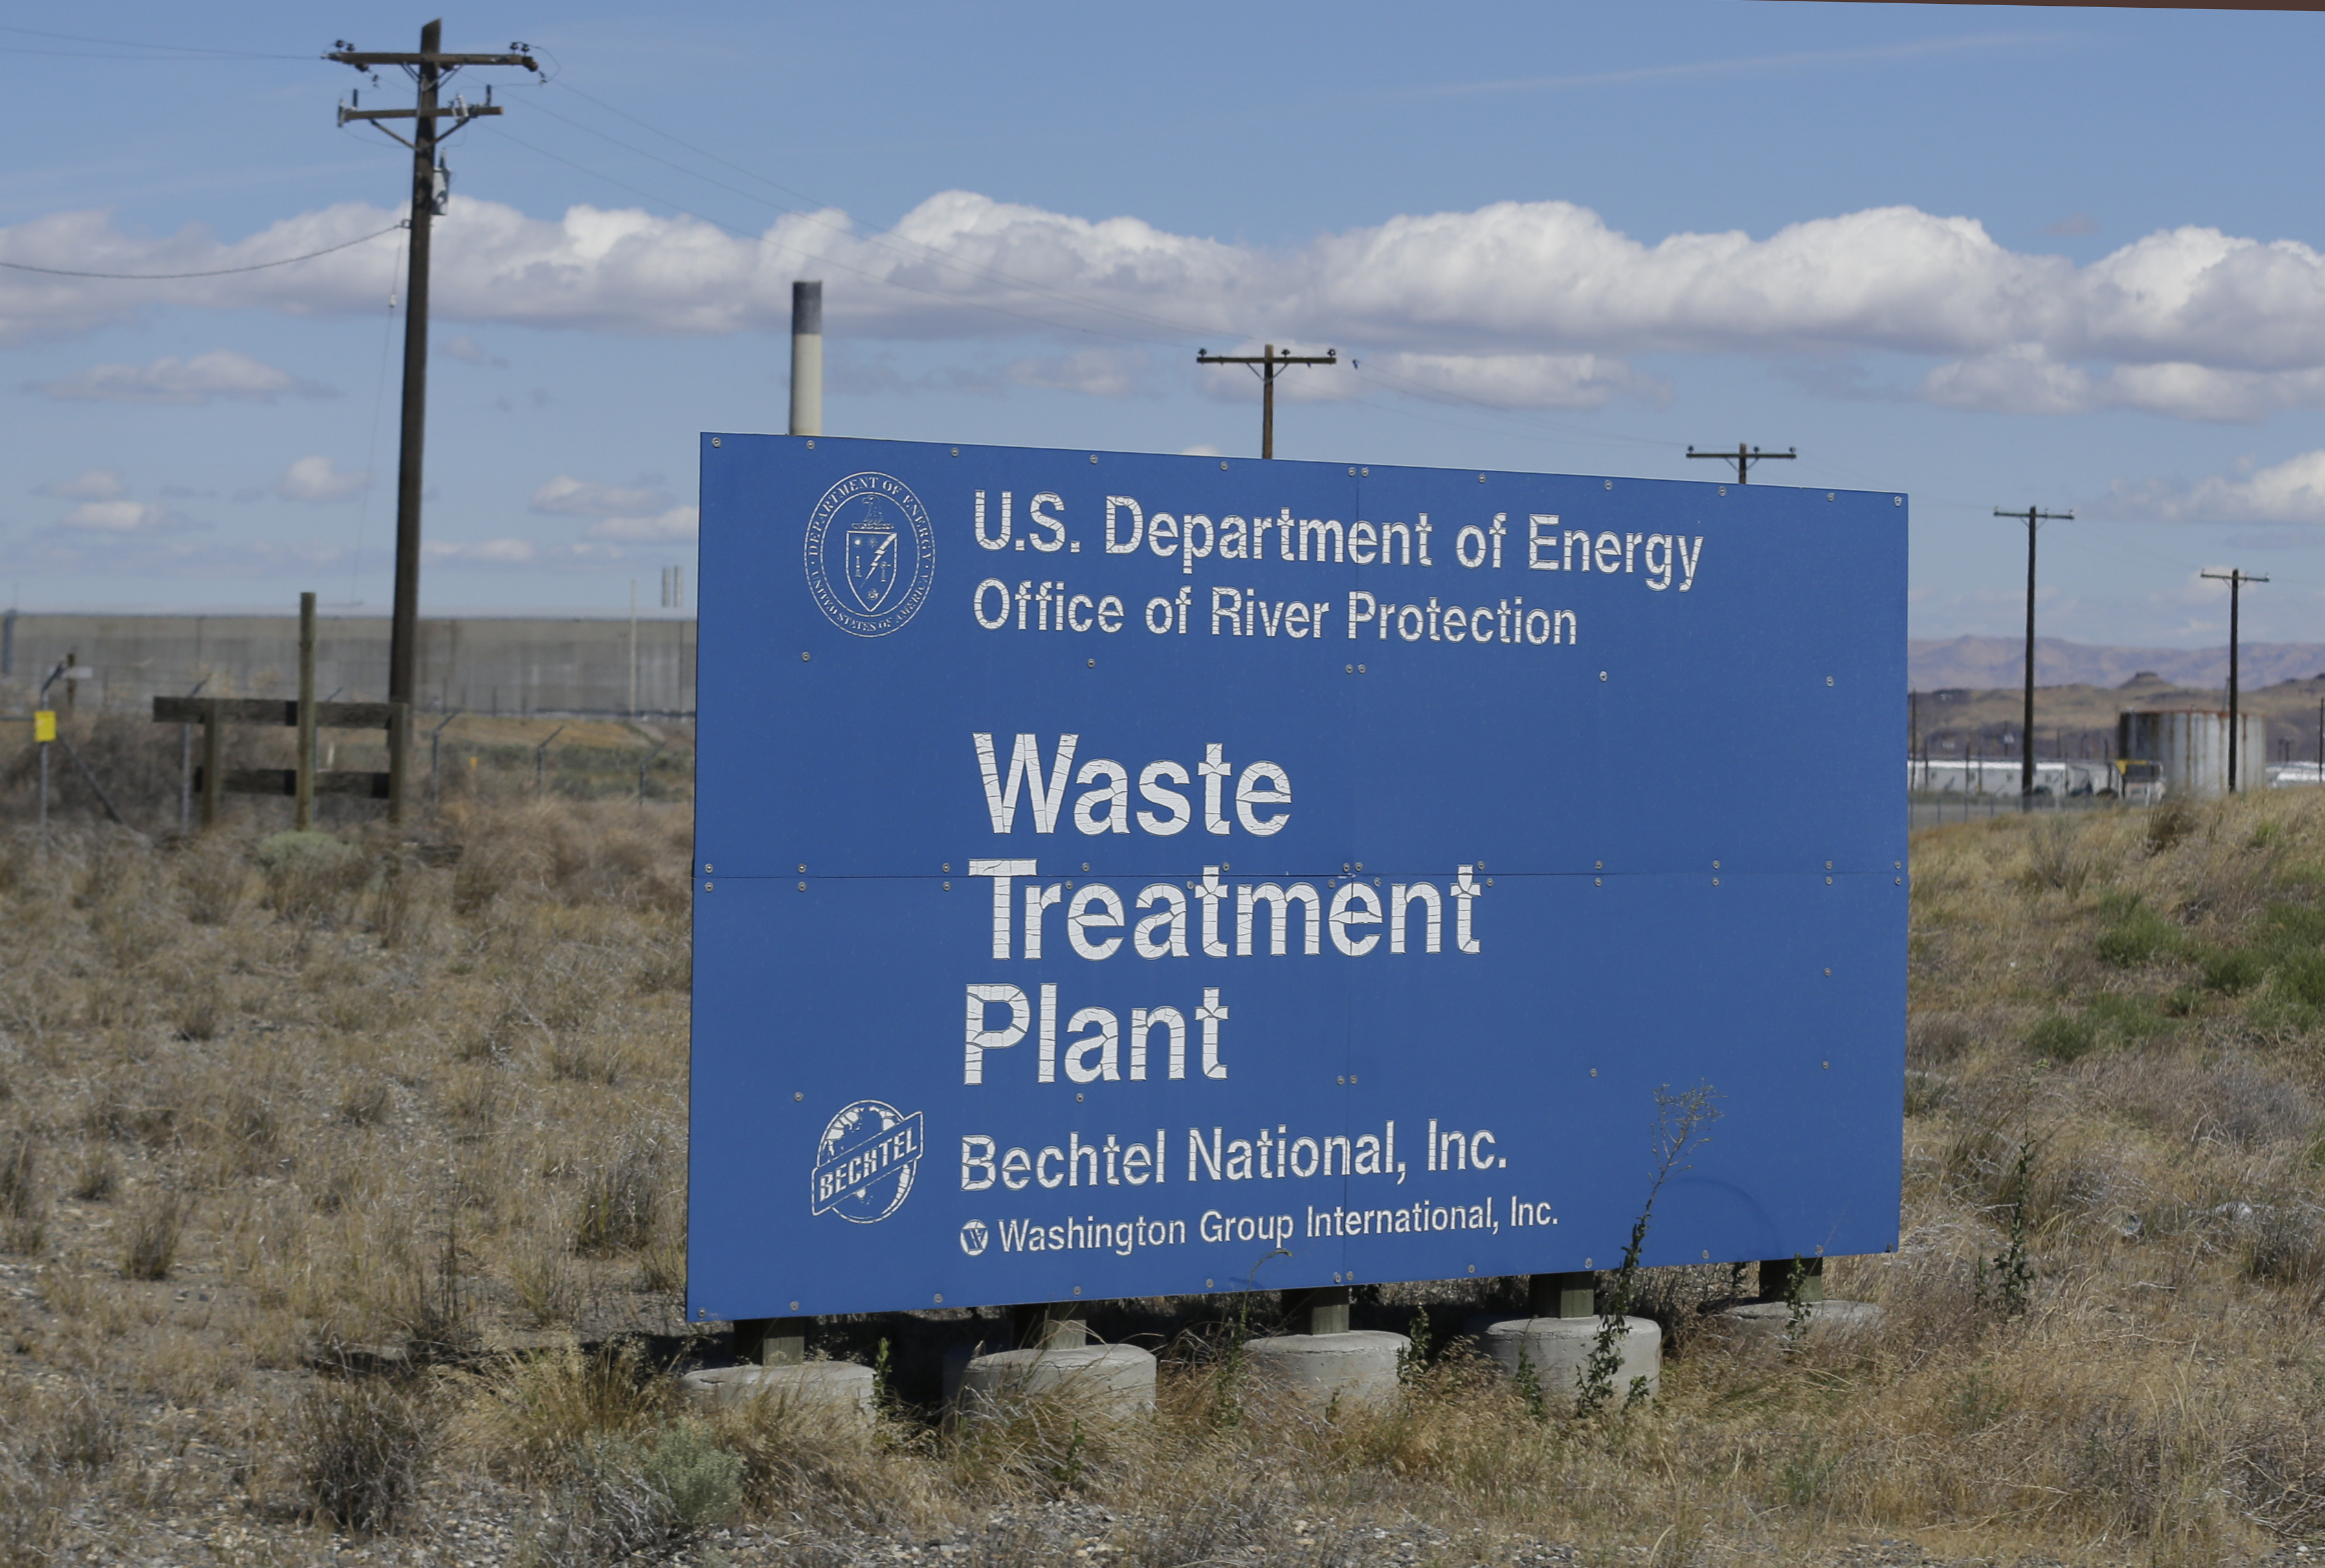 Hanford Nuclear Waste-3 In this photo taken July 11, 2016, a sign for a waste treatment plant on the Hanford Nuclear Reservation is shown near Richland, Wash. The U.S. Energy Department's top official at Washington state's severely contaminated nuclear reservation says future accidental nuclear radiation releases are likely because of aging site infrastructure and inadequate cleanup funding. Hundreds were evacuated May 9, 2017 when the roof of a 1950s rail tunnel storing a lethal mix of waste from plutonium production collapsed. Tests show no radiation was released. (AP Photo/Ted S. Warren)